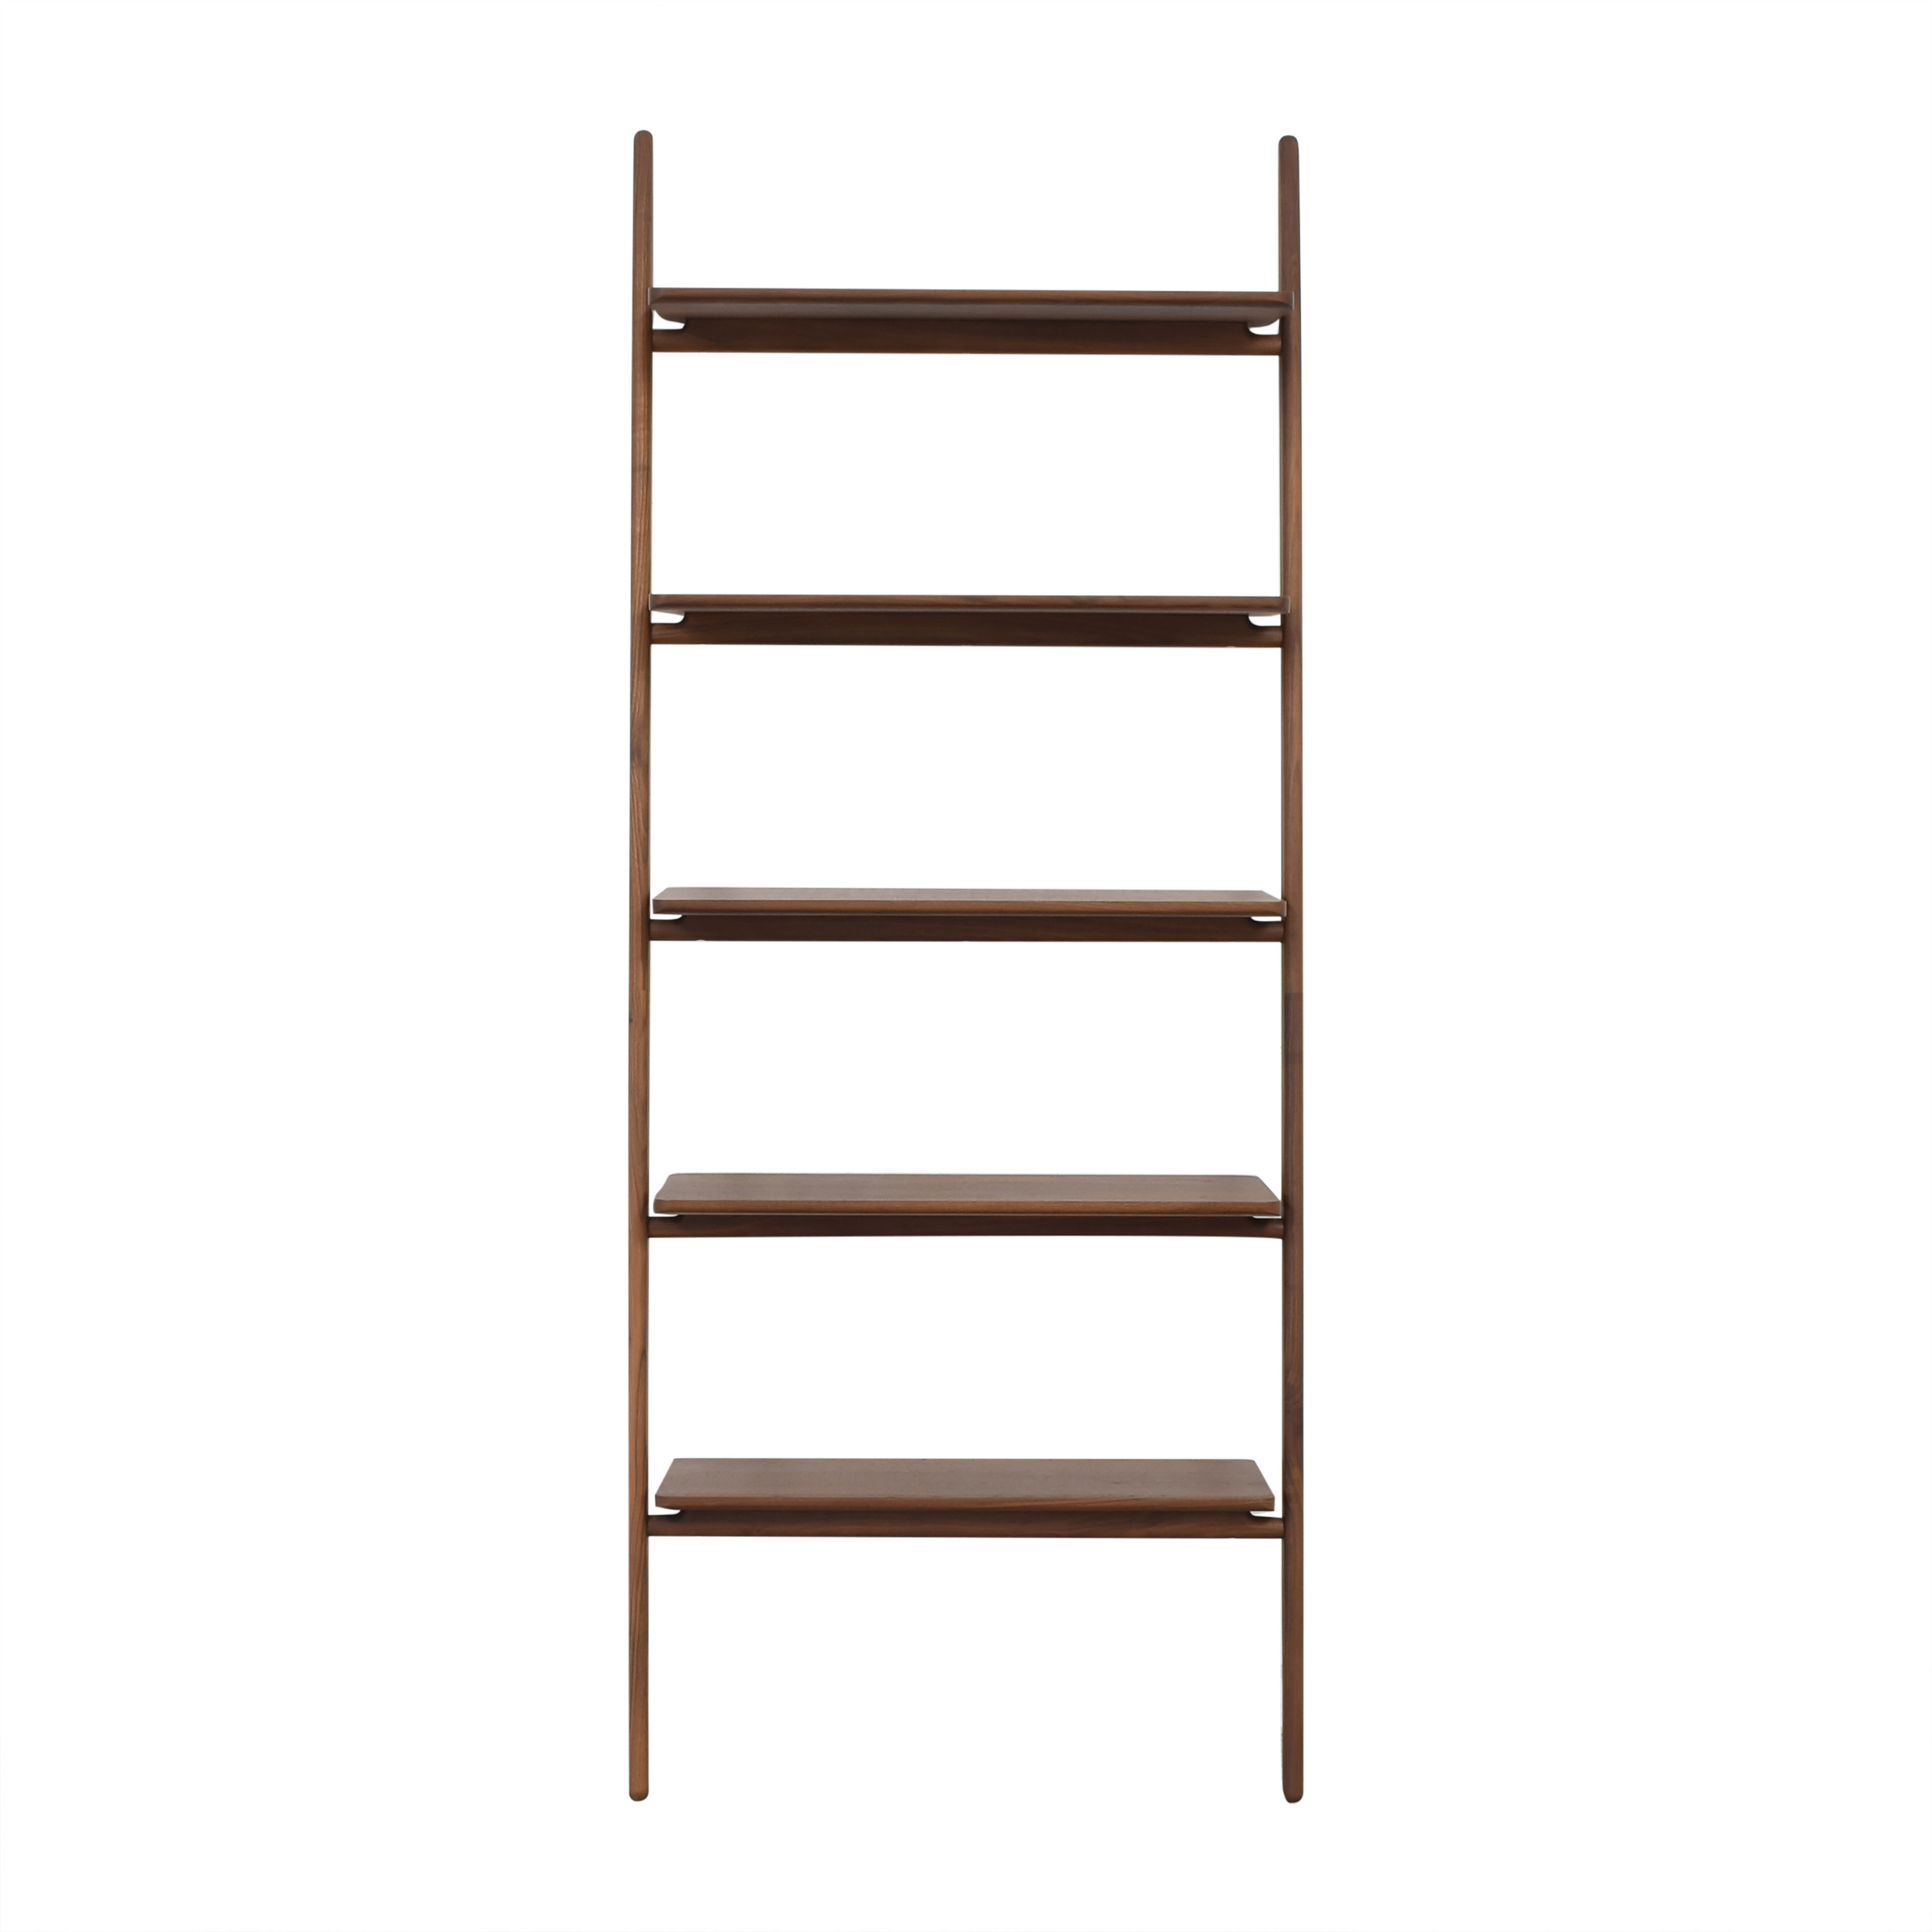 shop Design Within Reach Folk Ladder Shelving Design Within Reach Storage